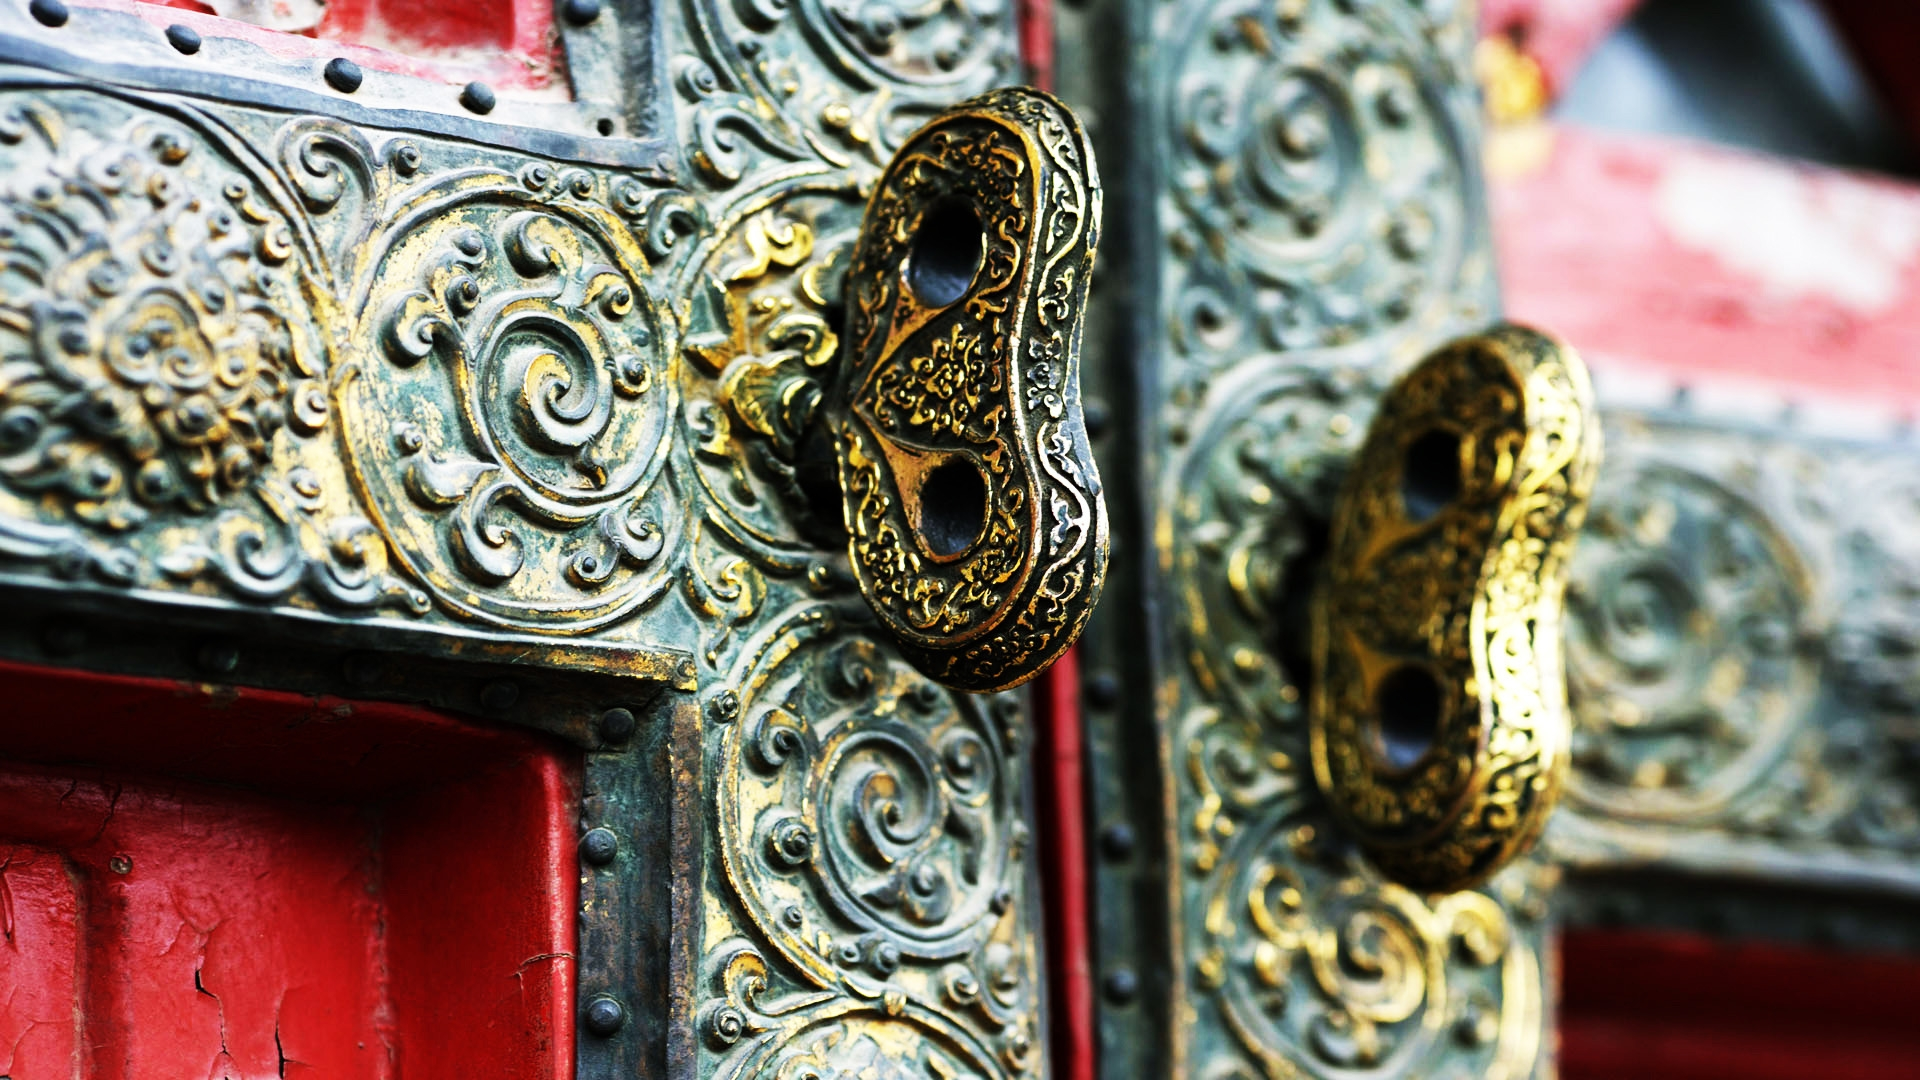 Chinese lock for 1920 x 1080 HDTV 1080p resolution